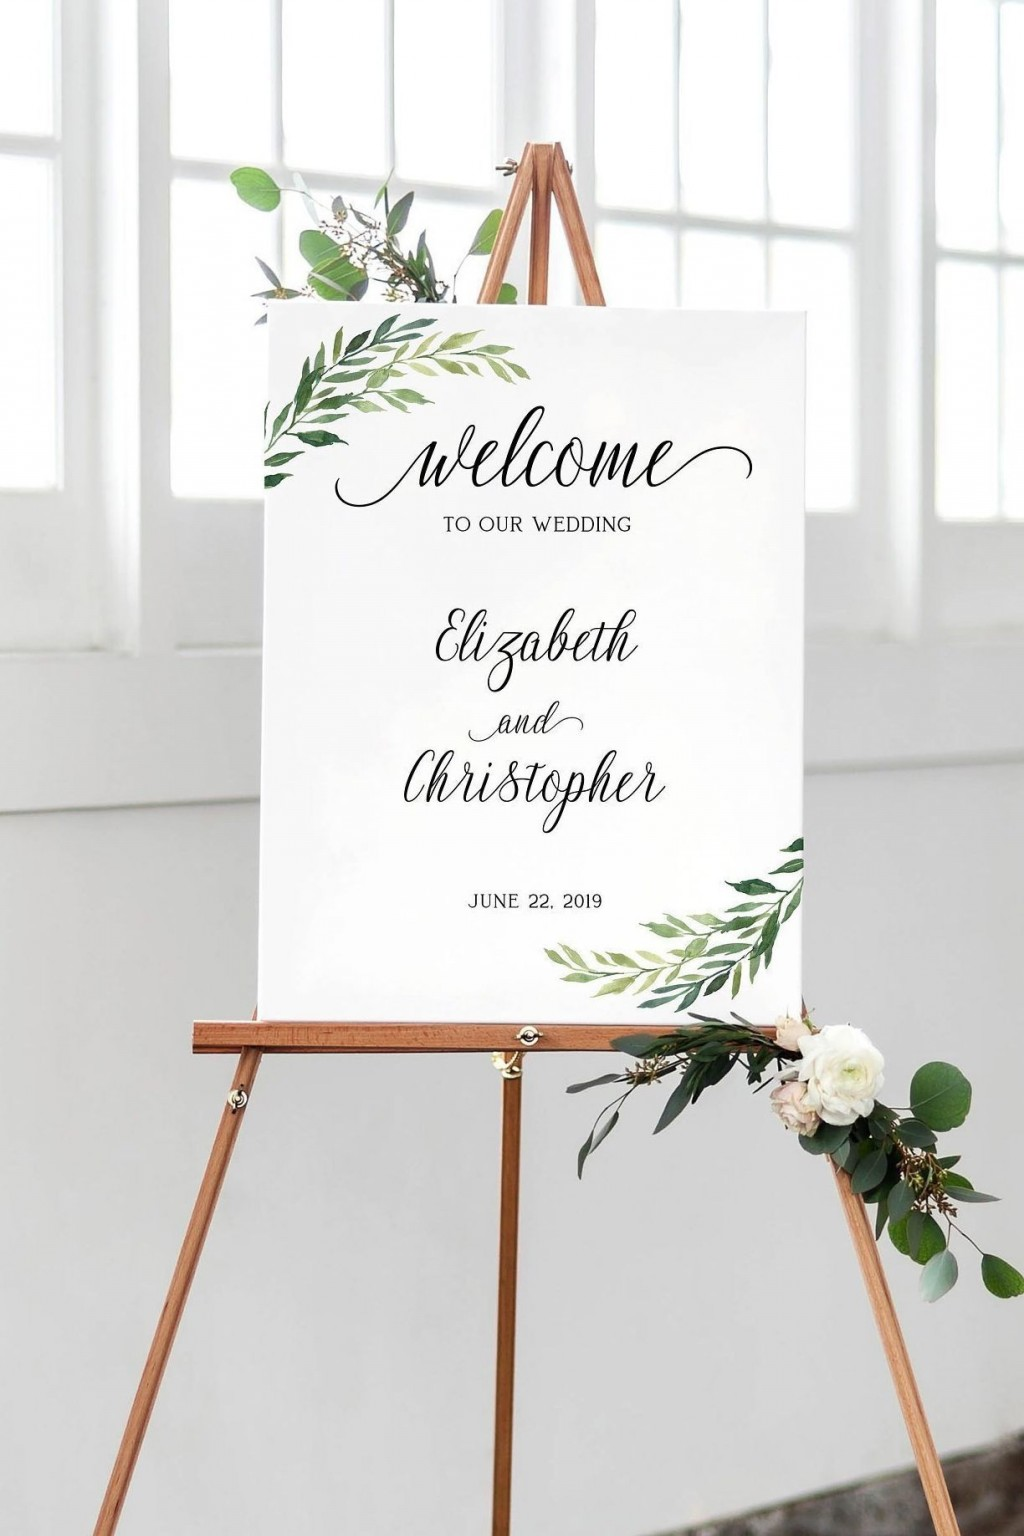 008 Fascinating Wedding Welcome Sign Template Free Image Large